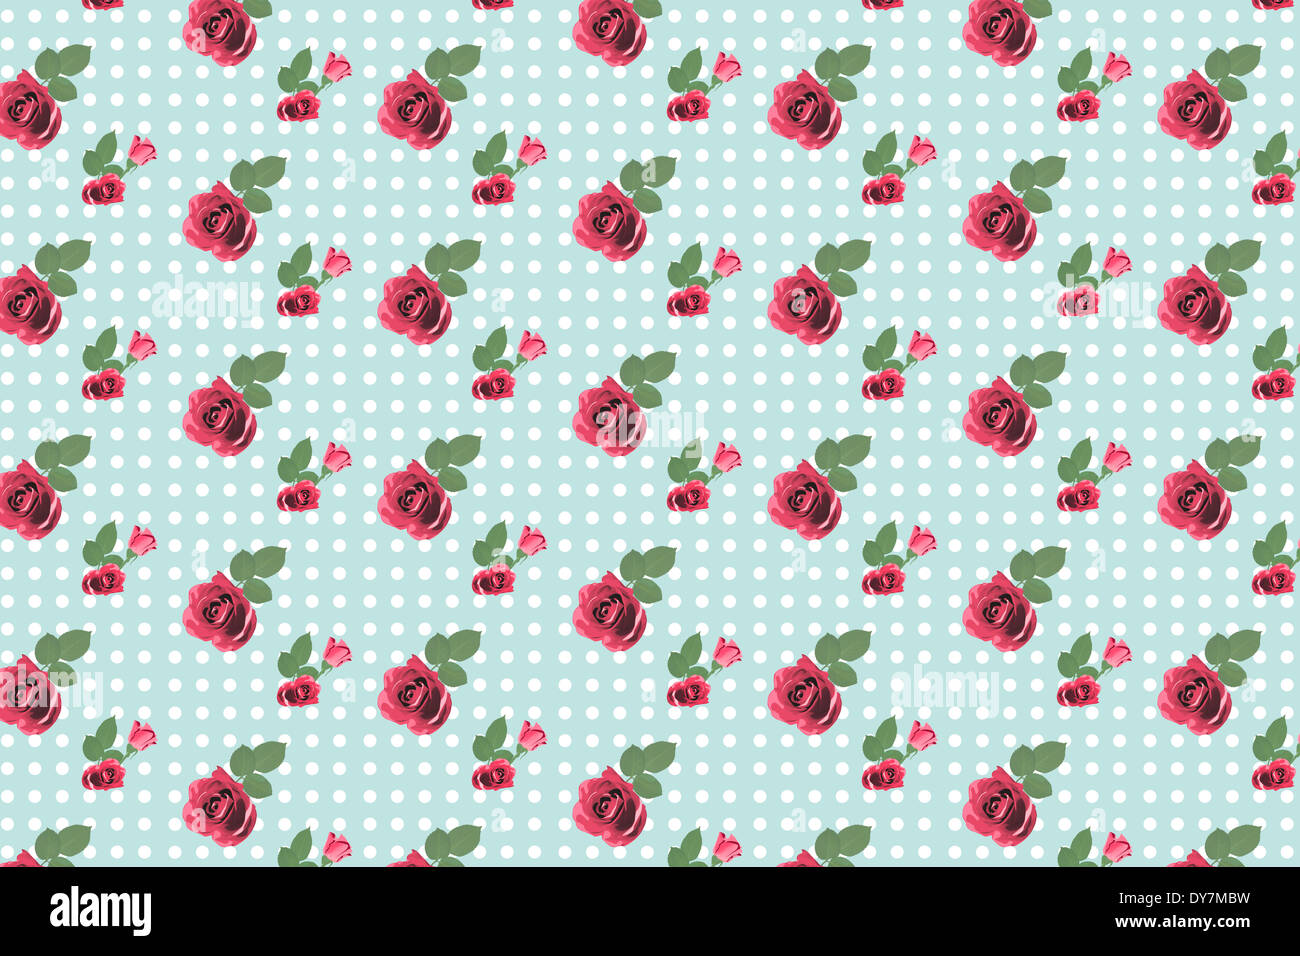 Kitsch floral pattern wallpaper with roses - Stock Image